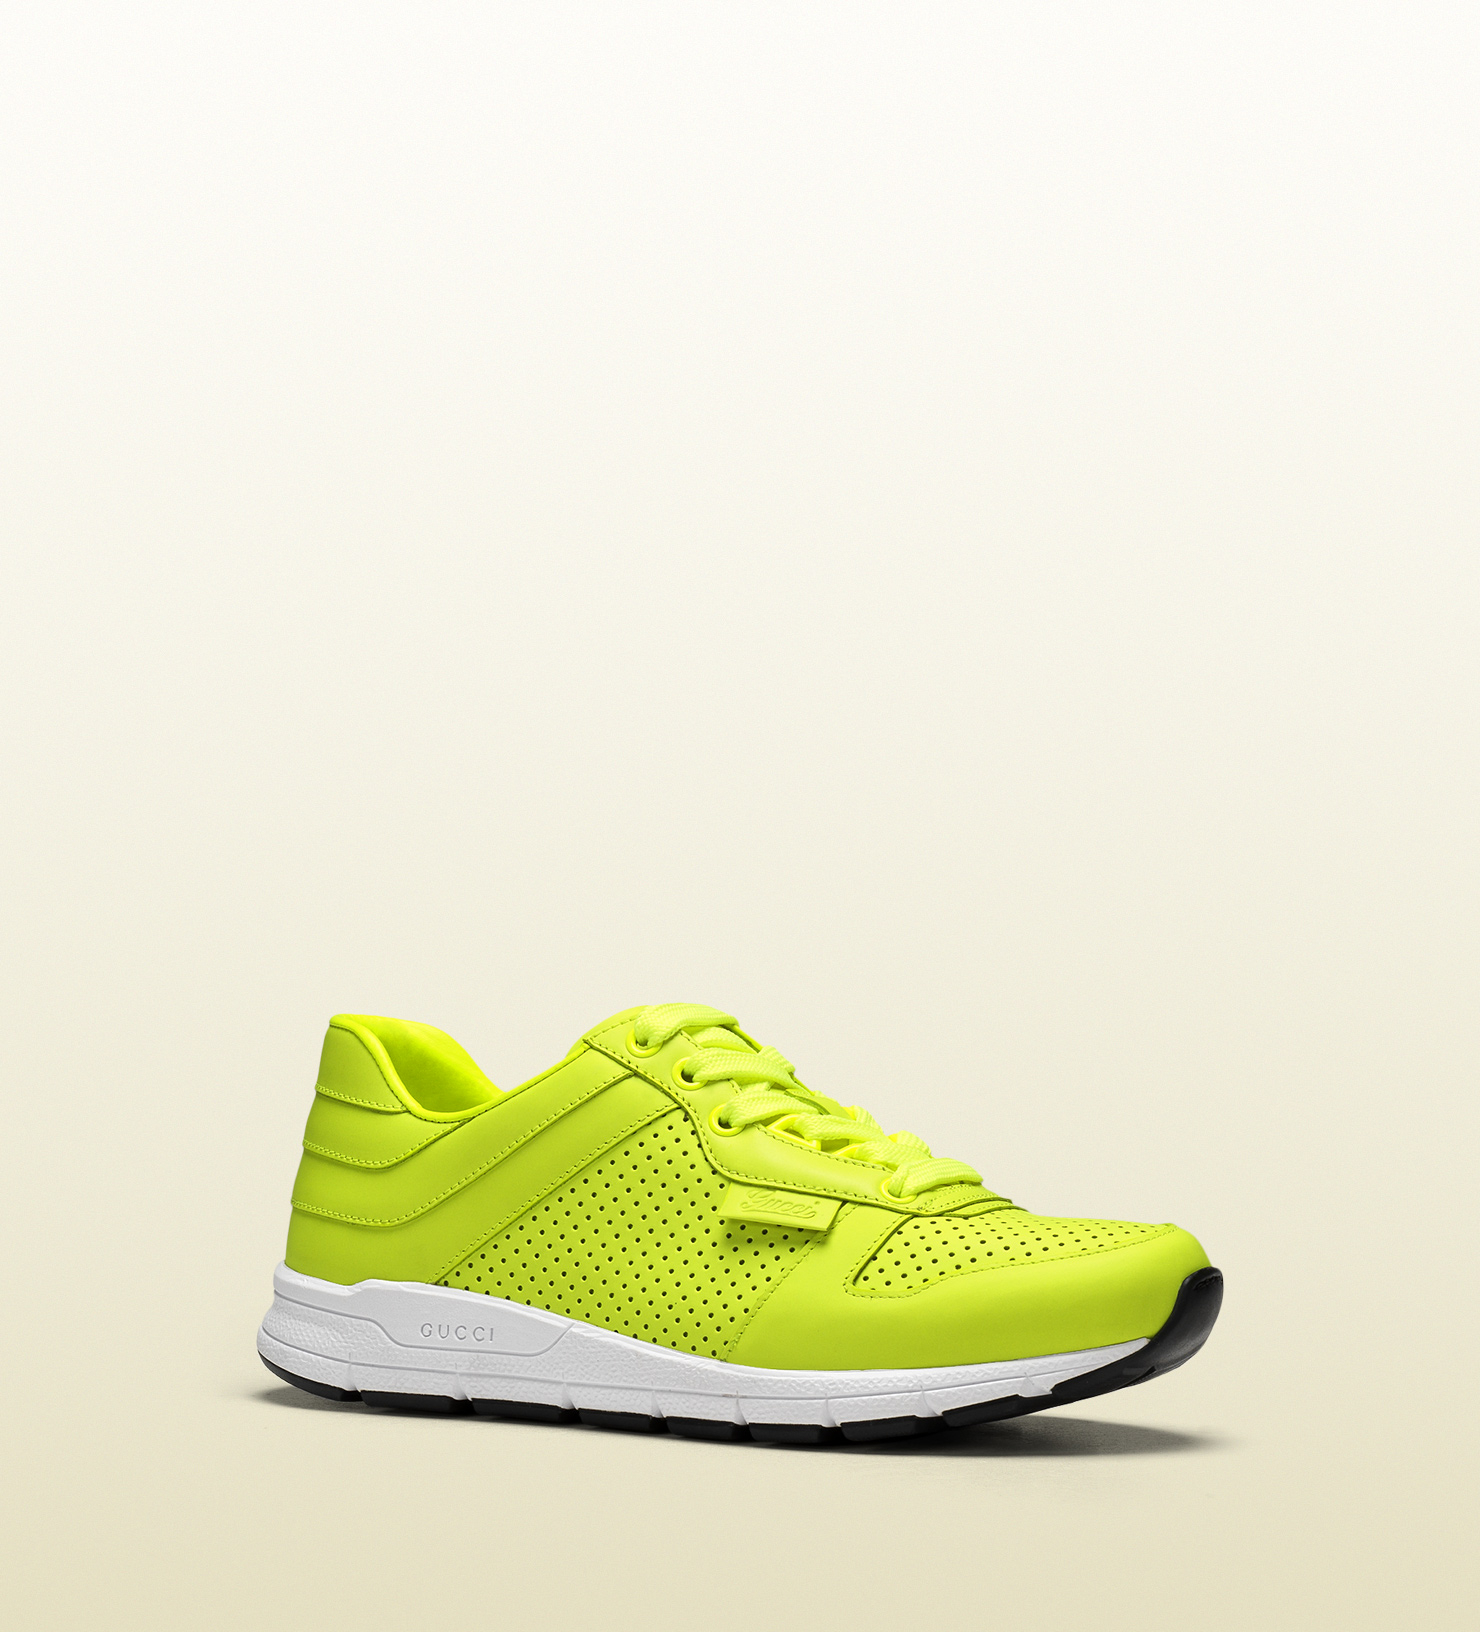 Gucci Neon Leather Low-top Sneaker in Yellow for Men